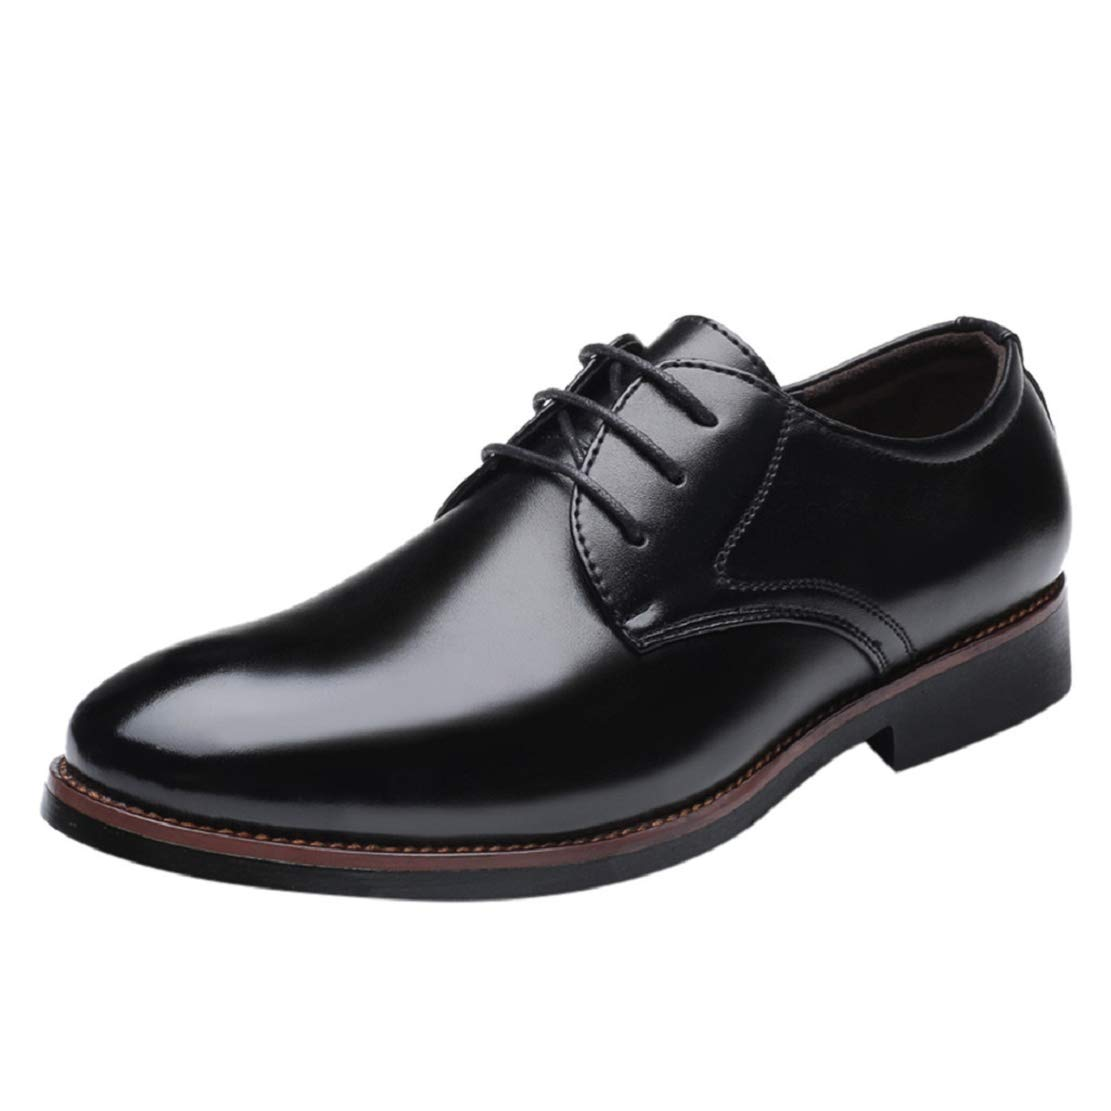 Men's Modern Formal Dress Shoes Breathable Business Wingtip Lace Up Shoes Leather Business Casual Shoes by Lowprofile Black